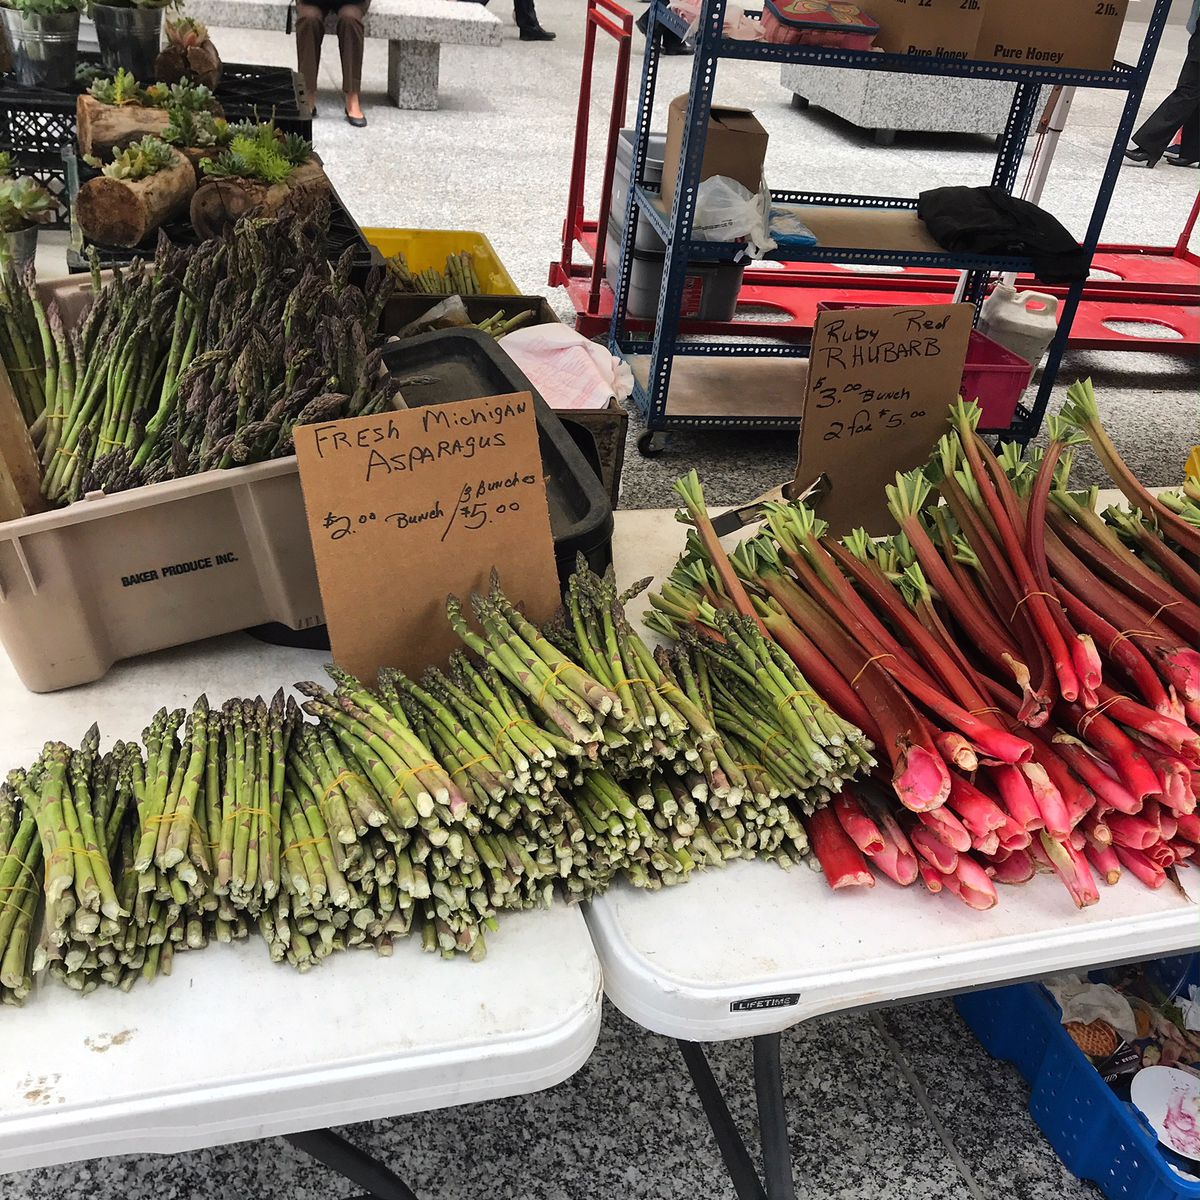 Asparagus & rhubarb are plentiful at the start of the Farmers Market season.   Provided to the Sun-Times